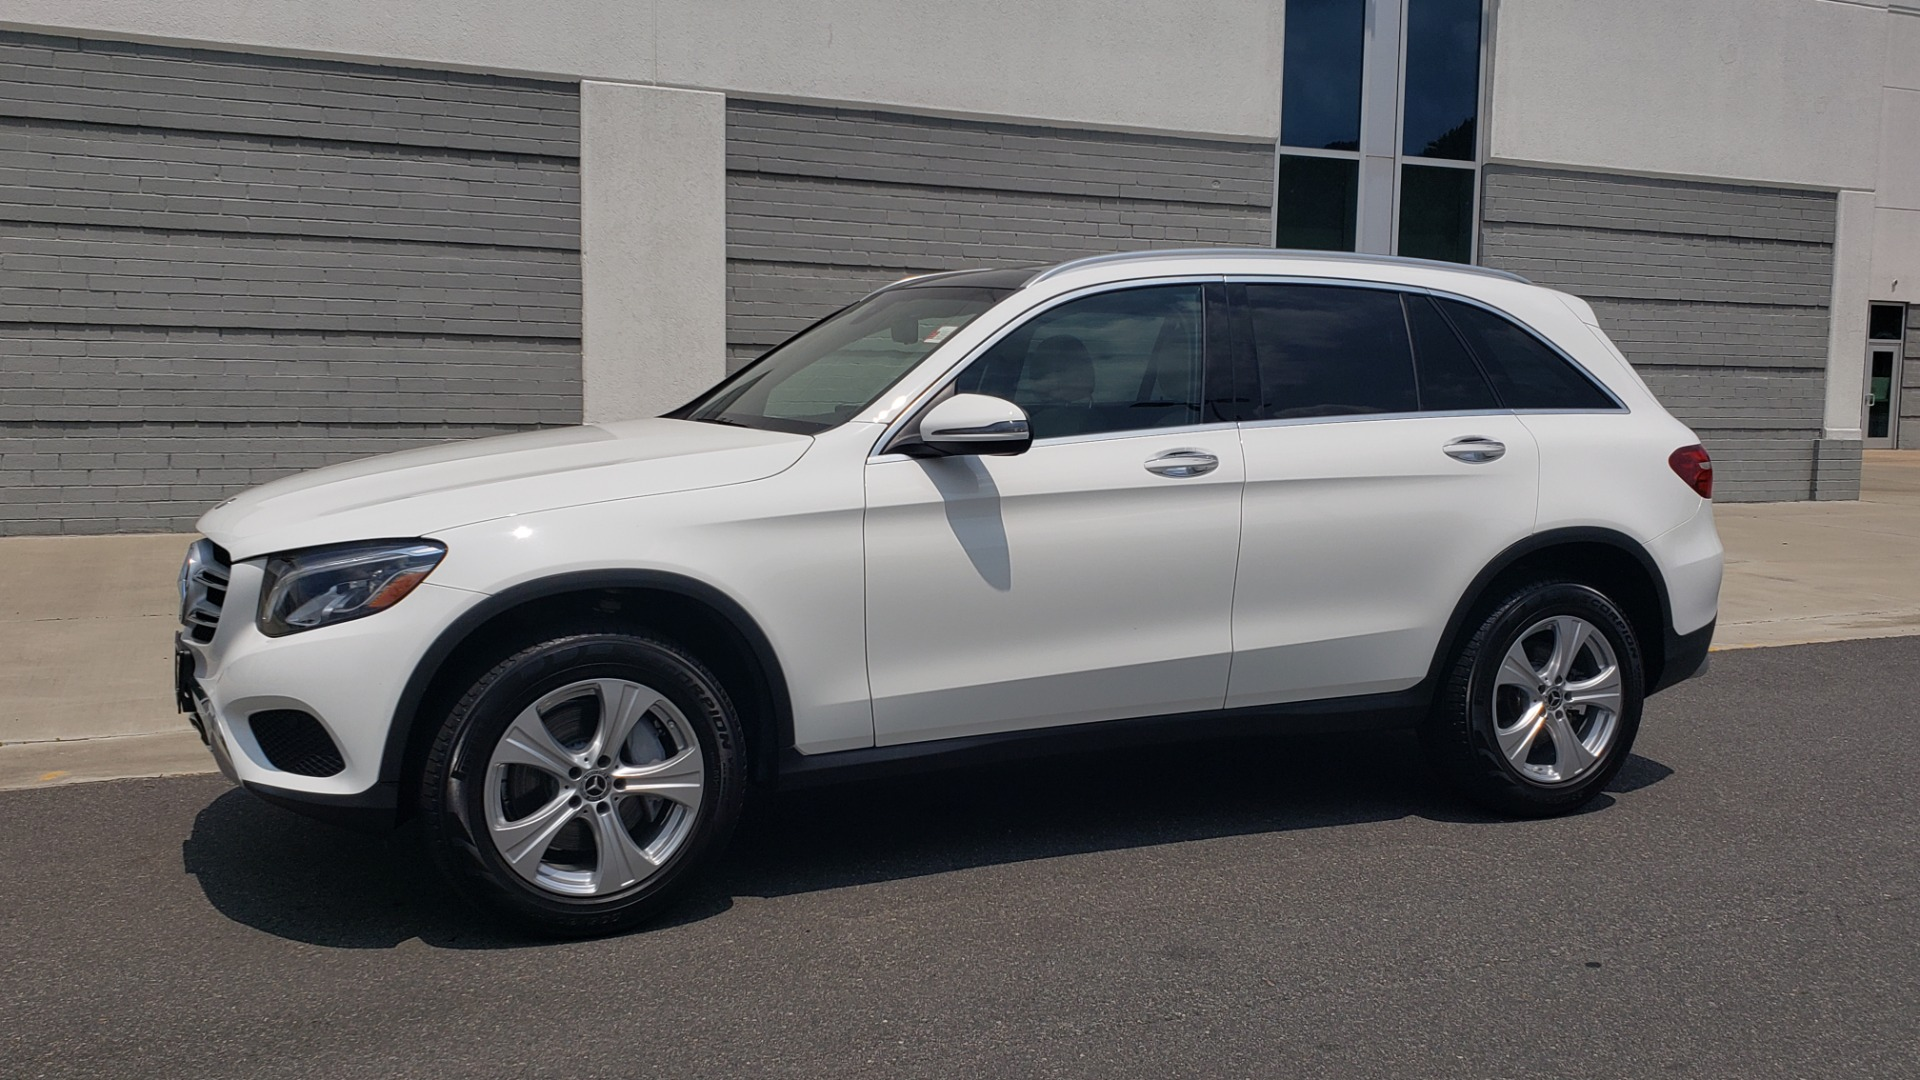 Used 2018 Mercedes-Benz GLC 300 PREMIUM 4MATIC / PANO-ROOF / BURMESTER / REARVIEW for sale $36,295 at Formula Imports in Charlotte NC 28227 4